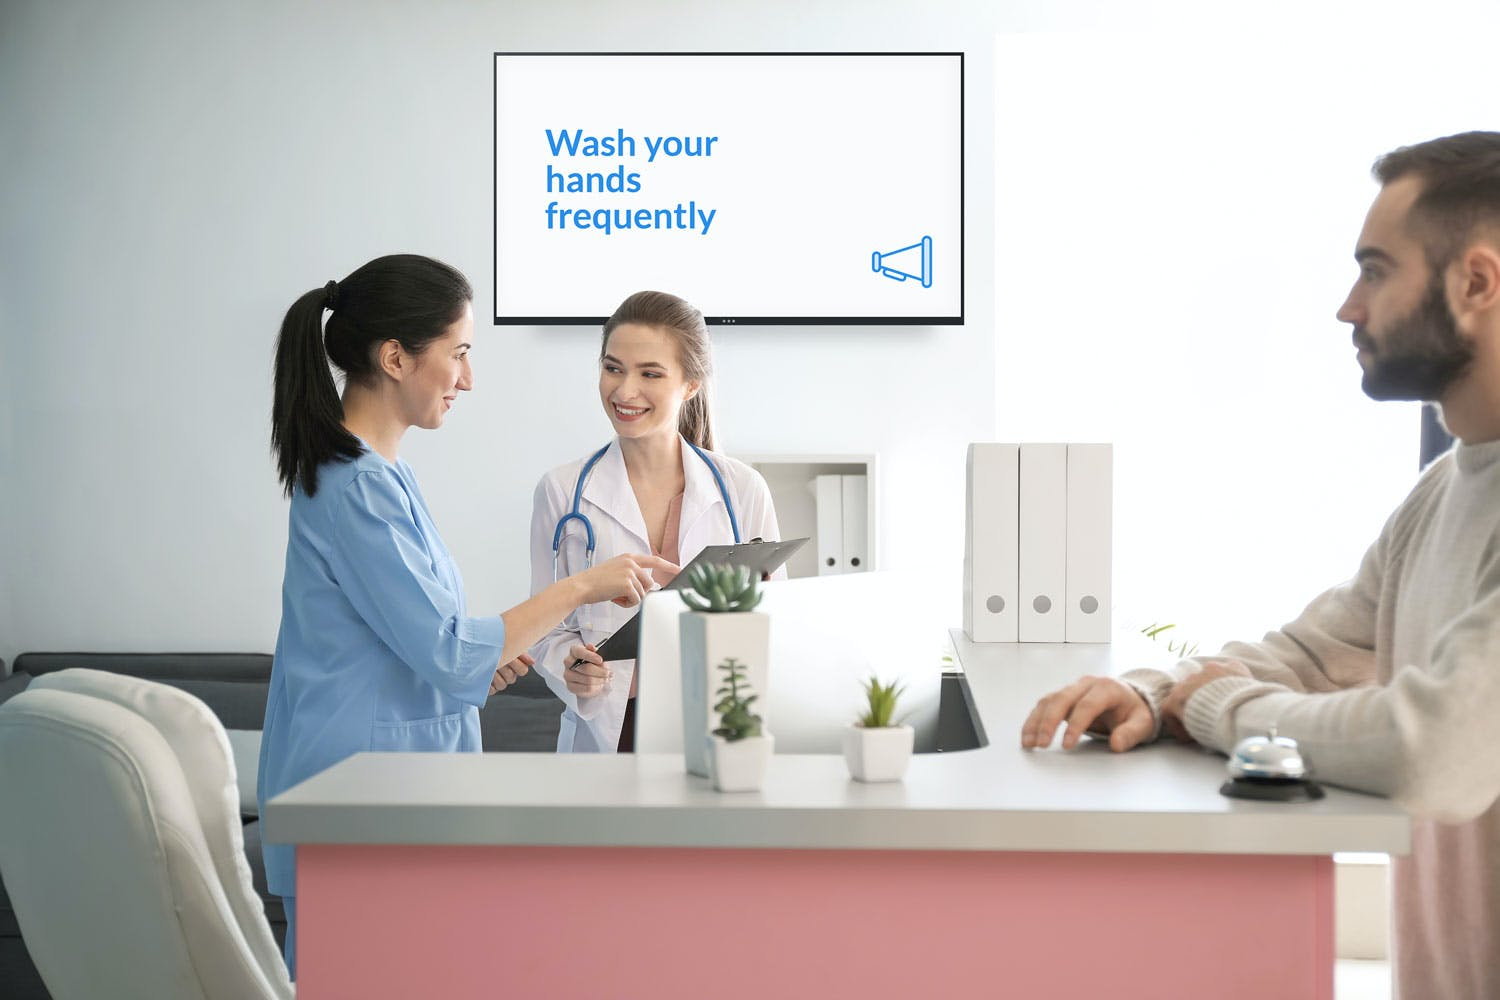 hospital reception with wash your hands sign